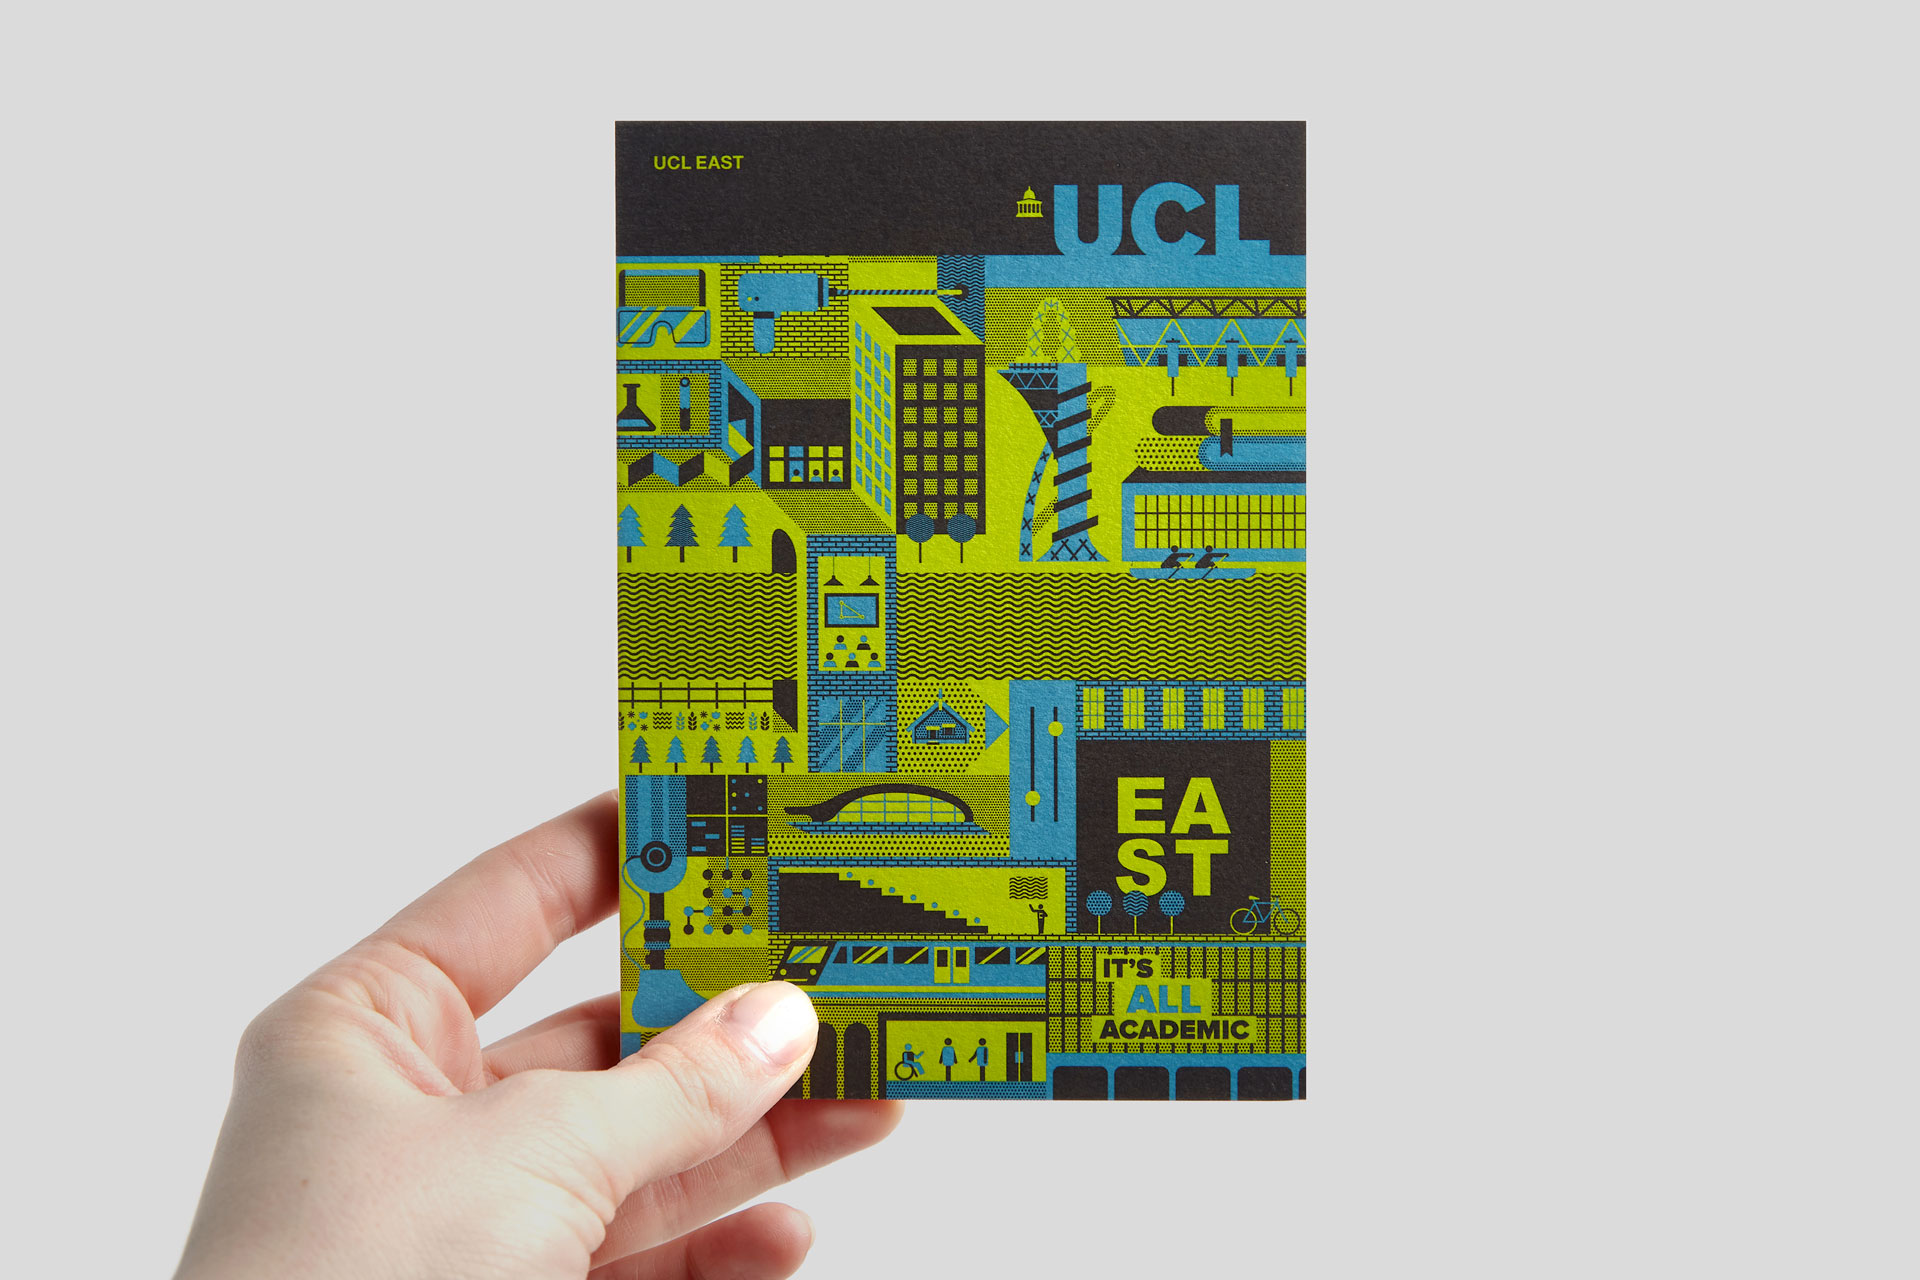 Fundraising campaign for UCL's largest ever single expansion 3